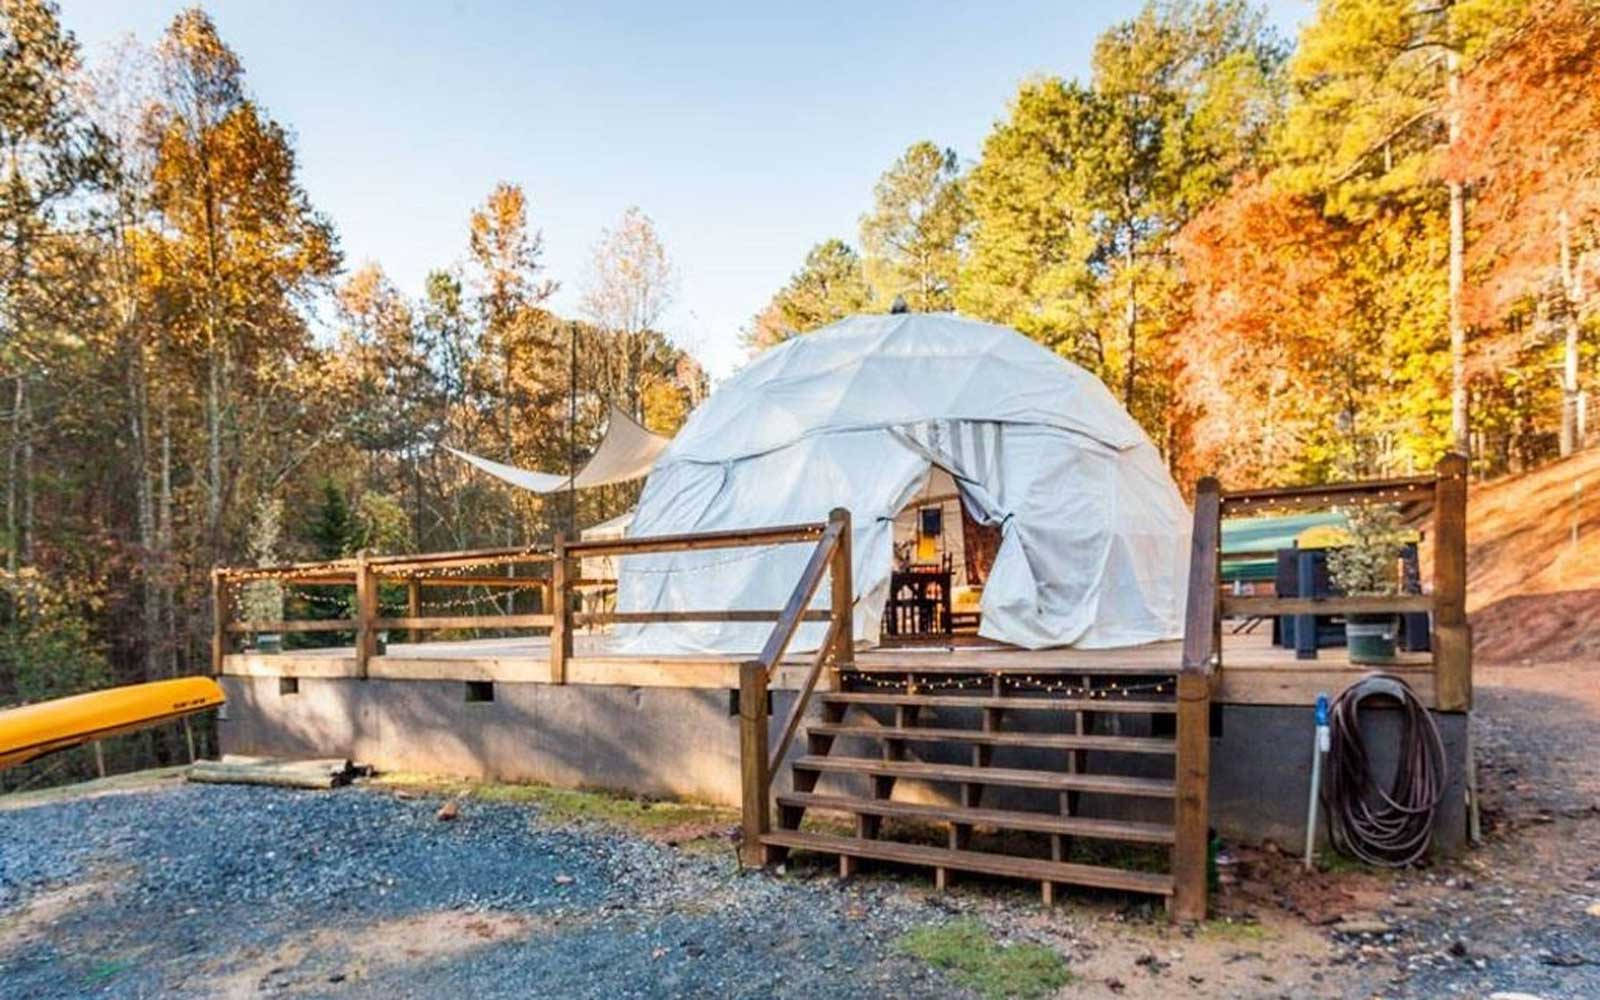 Glamping Dome in the Appalachian Mountains, Georgia